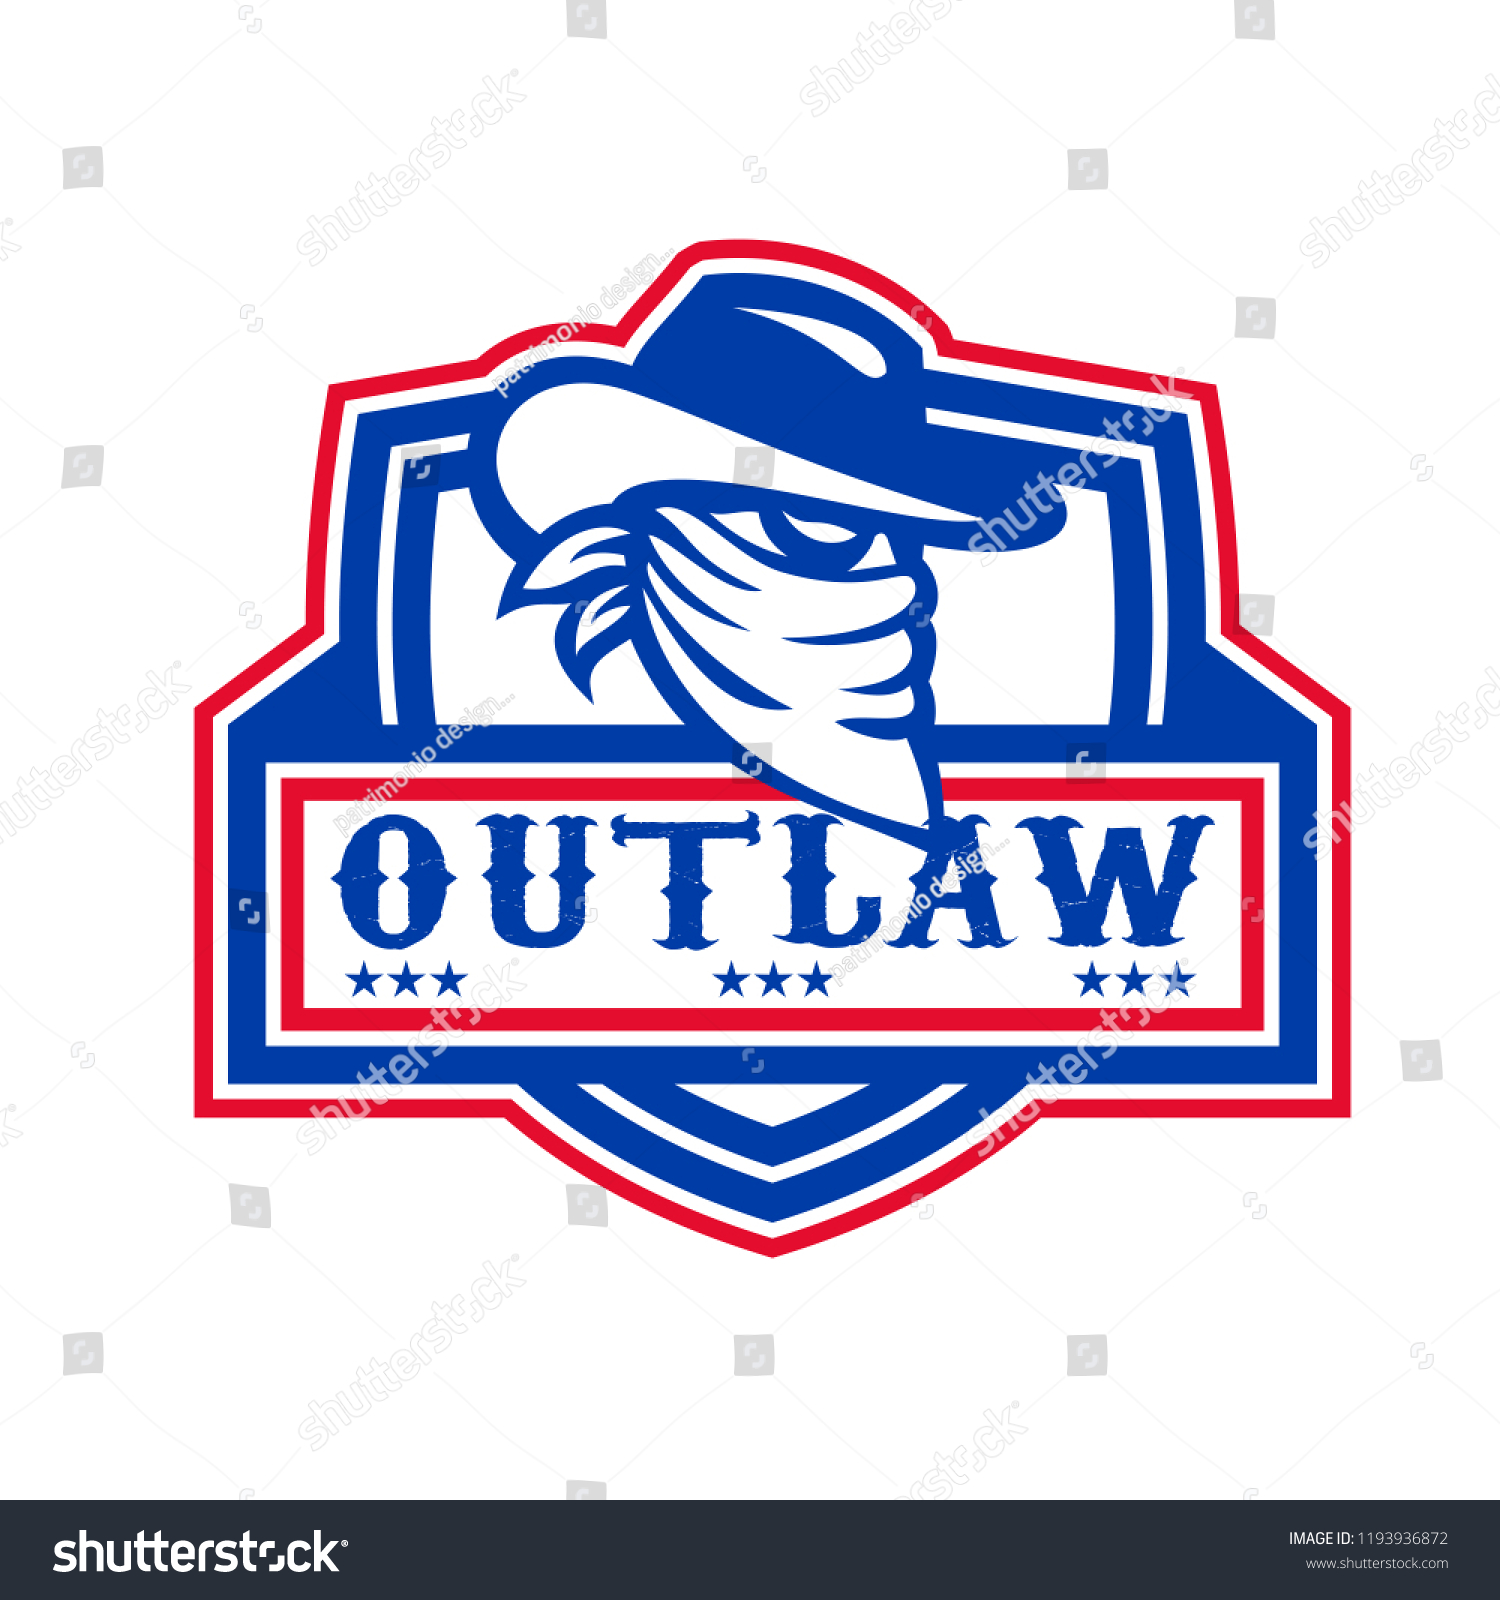 babd5dc136e Mascot icon illustration of head of a cowboy outlaw or bandit with covered  face viewed from